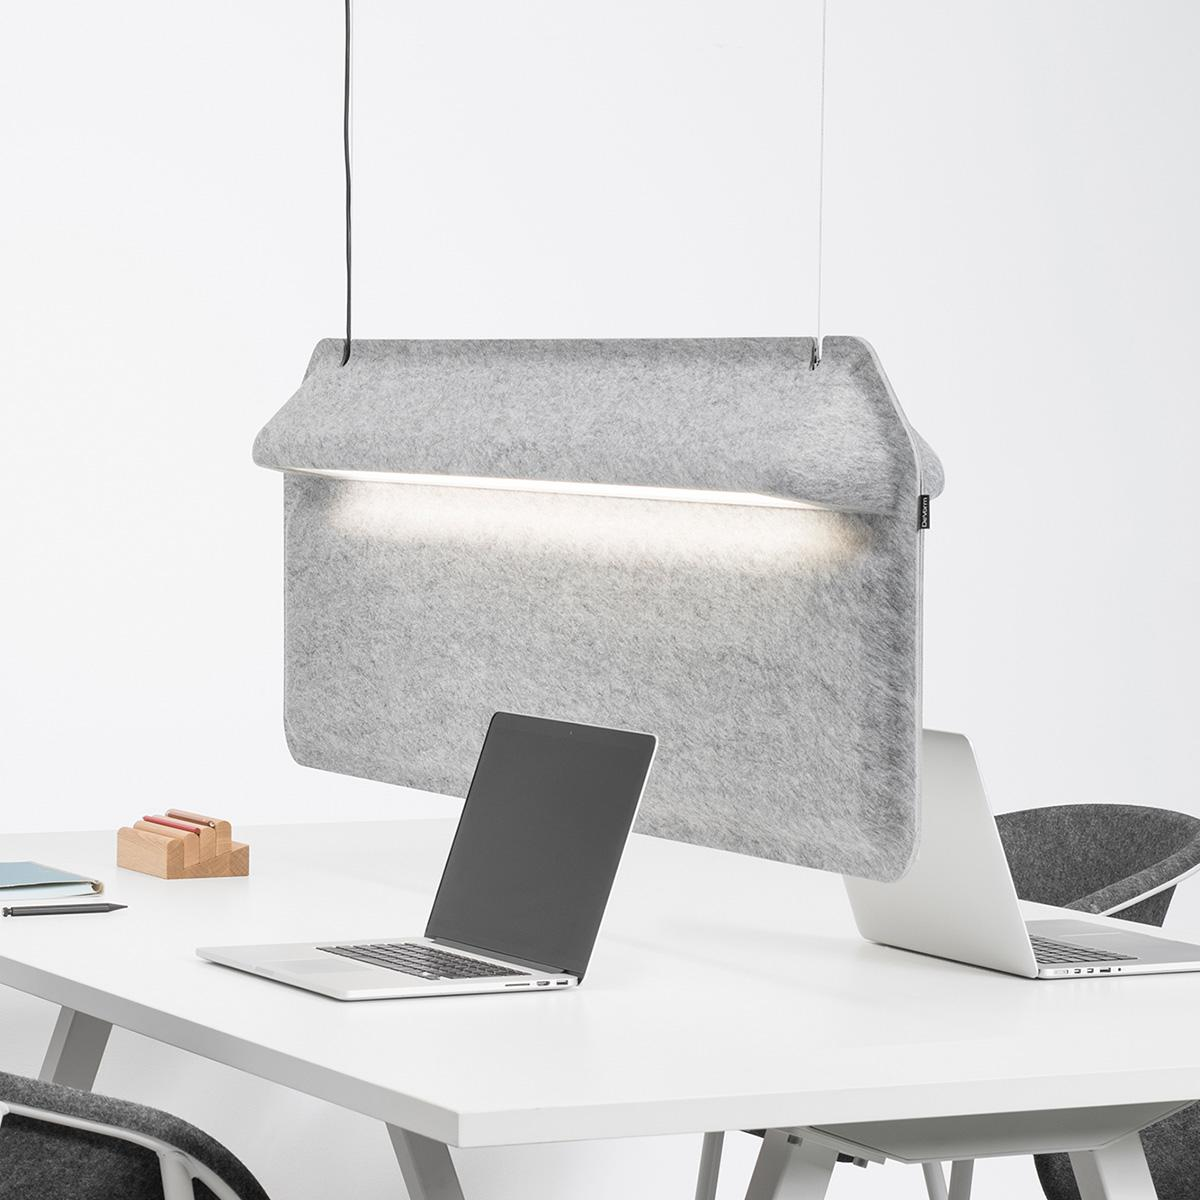 1200_0002_DeVorm-Workspace-Divider-Lamp-AK